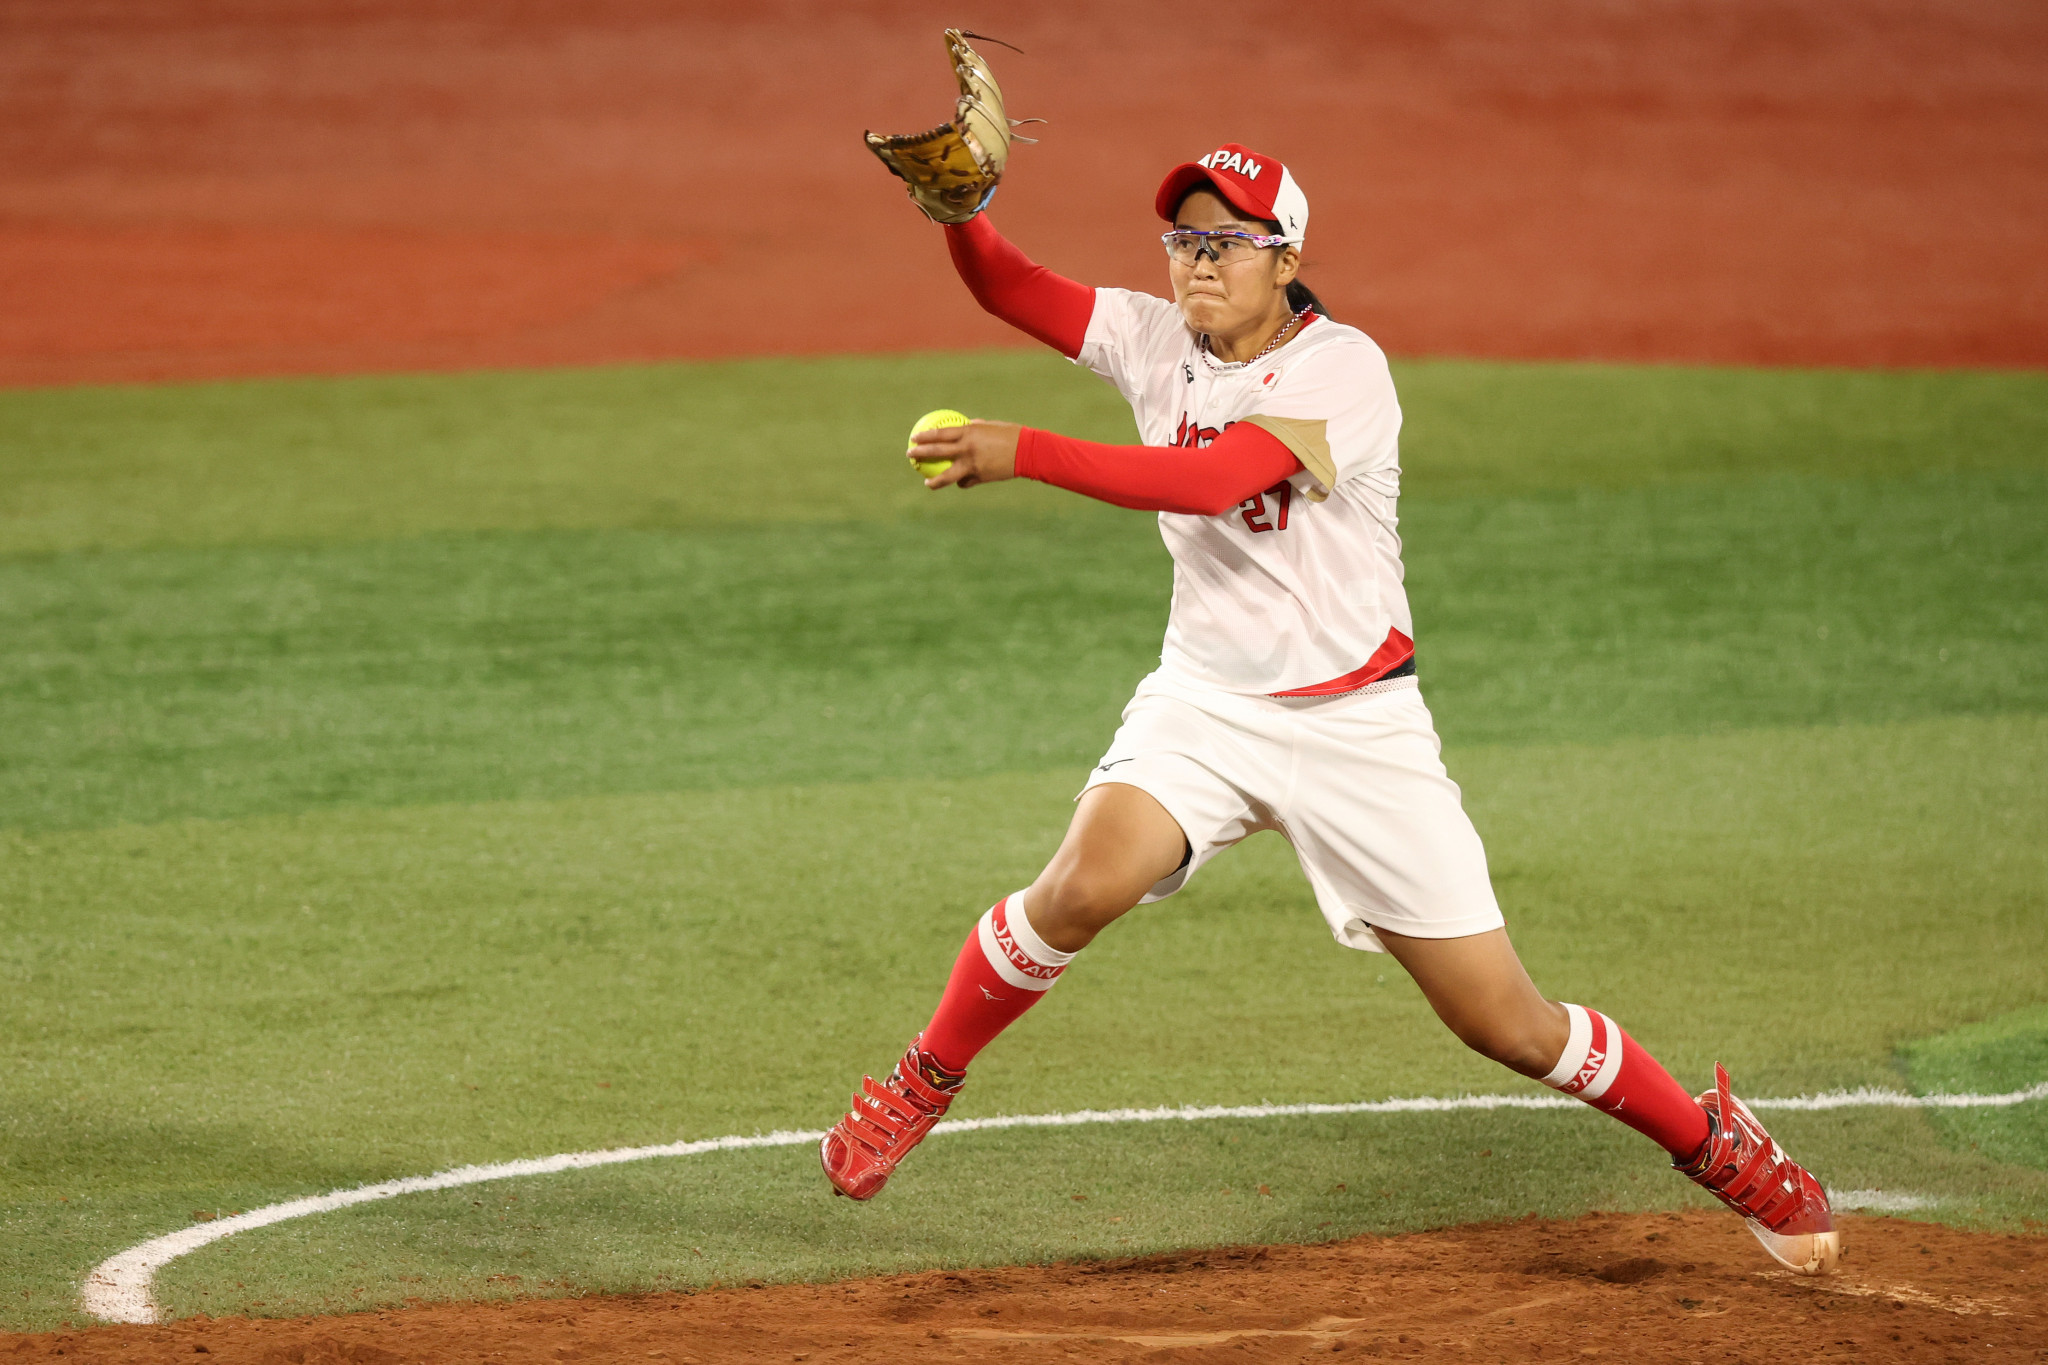 Japanese softball pitcher Miu Goto is to receive a new gold medal after the Mayor of Nagoya bit her original ©Getty Images